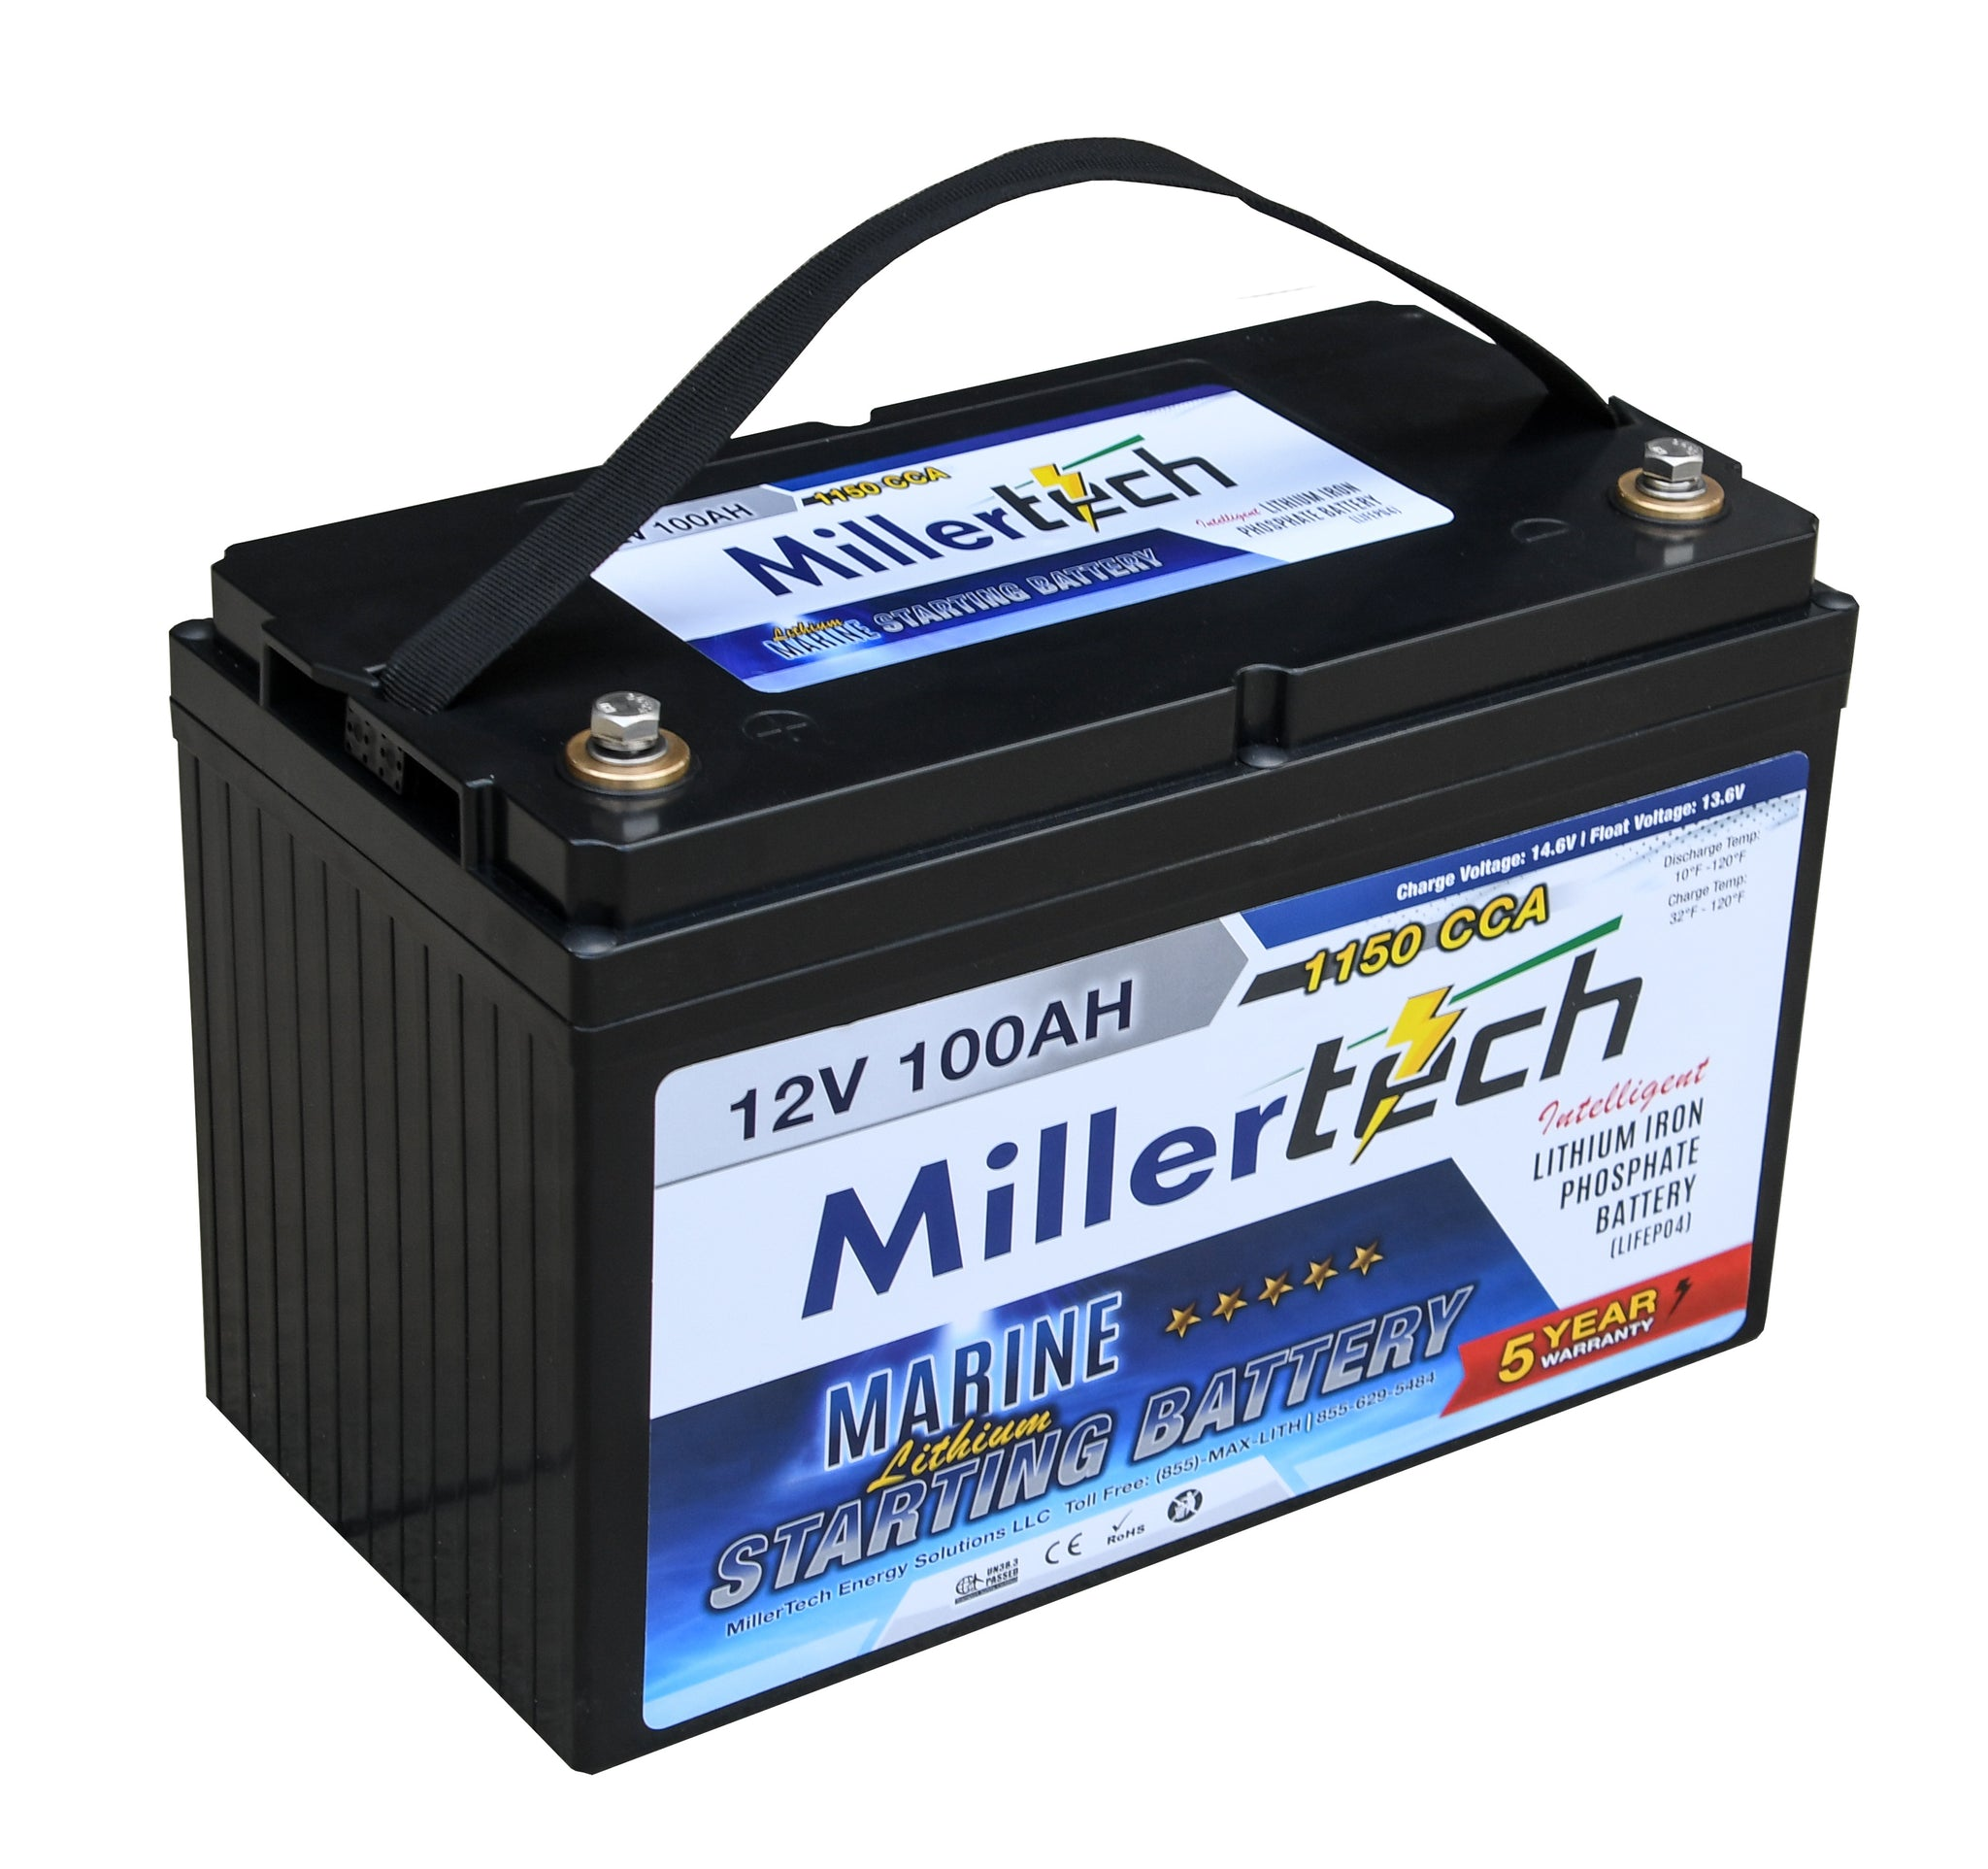 Starting Battery 12 Volt 100 Amp Hour - 1150CCA